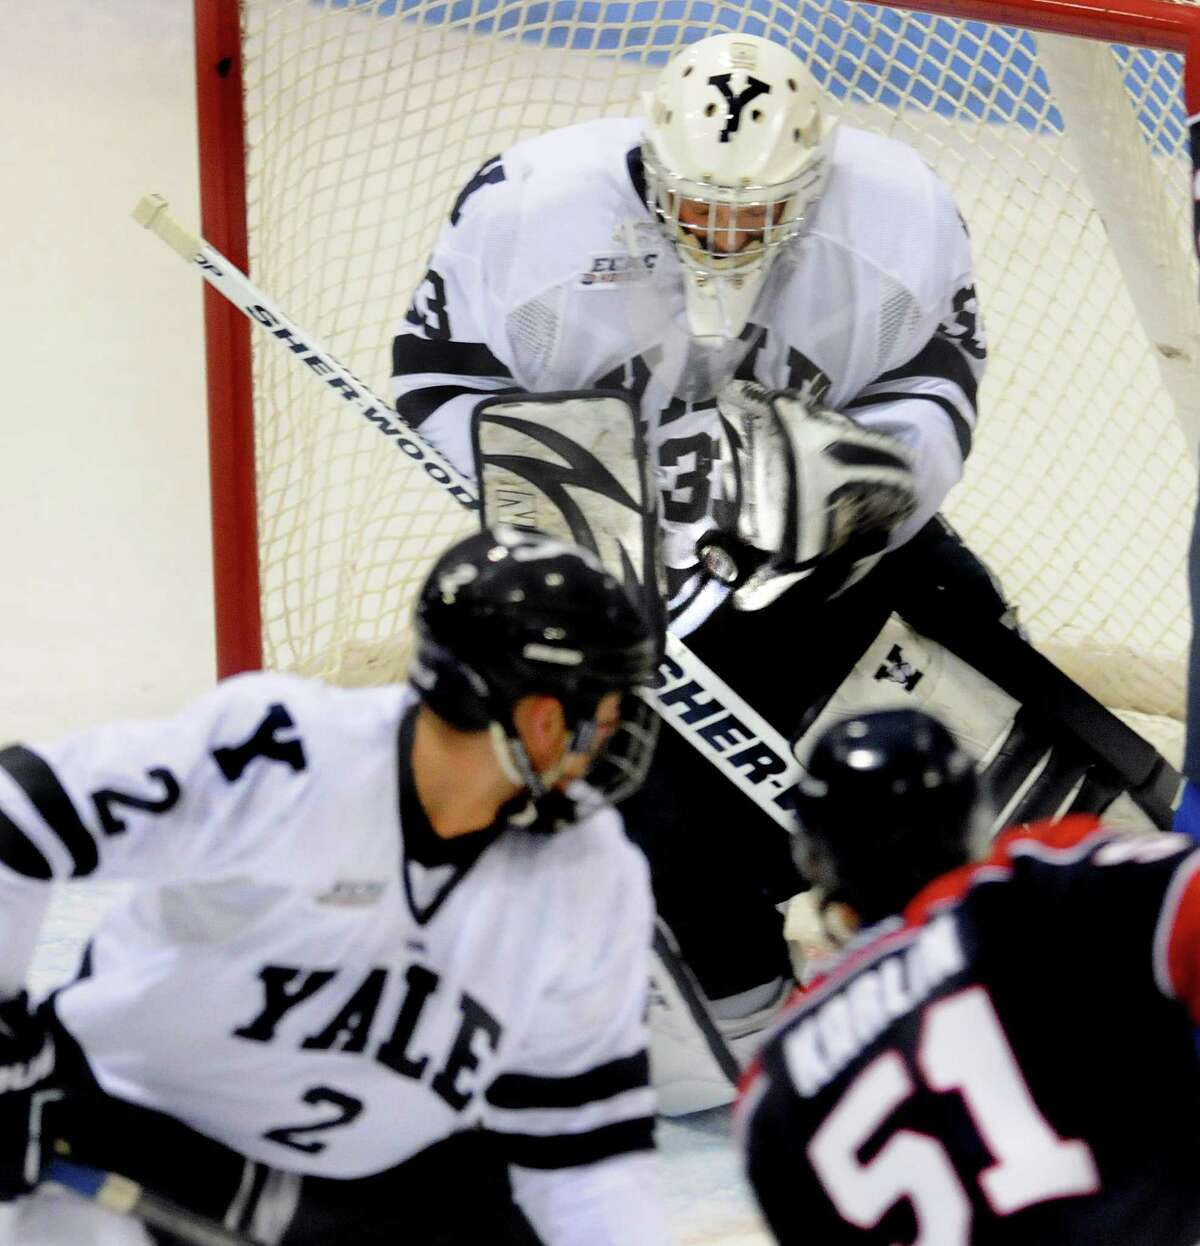 Sports__ Yale goalie Jeff Malcolm stops a shot in a game earlier in the year. Helping to cover is Yale's Gus Young. Melanie Stengel/Register